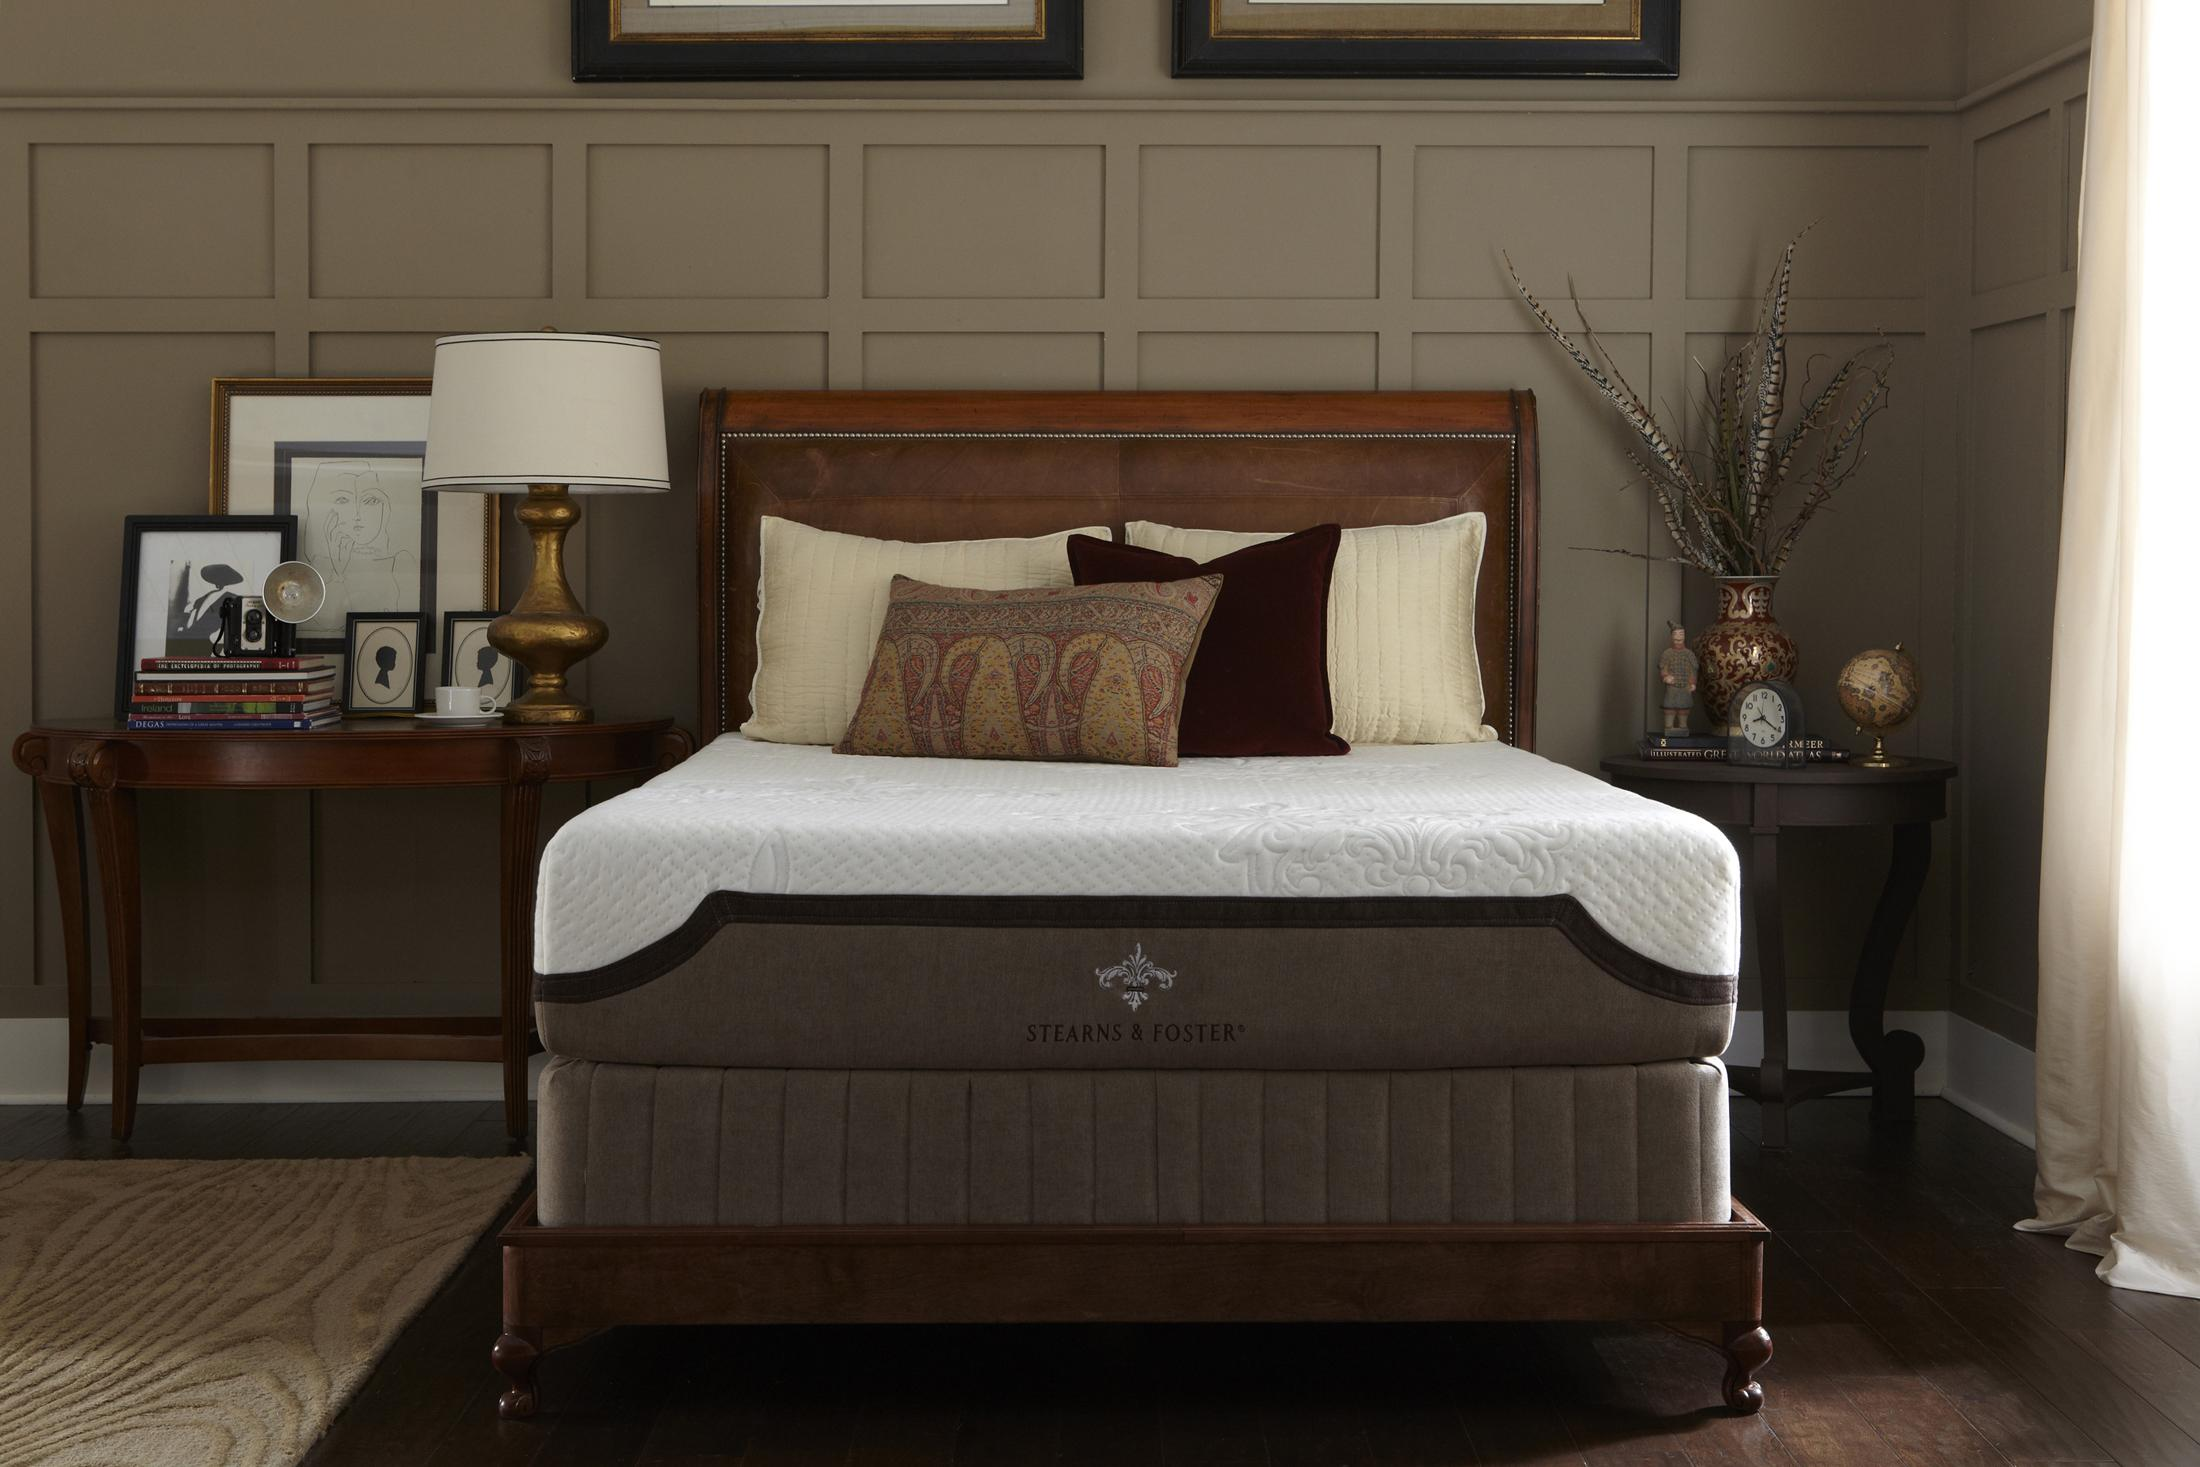 bedding design by Sprintz Furniture matched with wheat wainscoting wall plus table standing lamp ideas